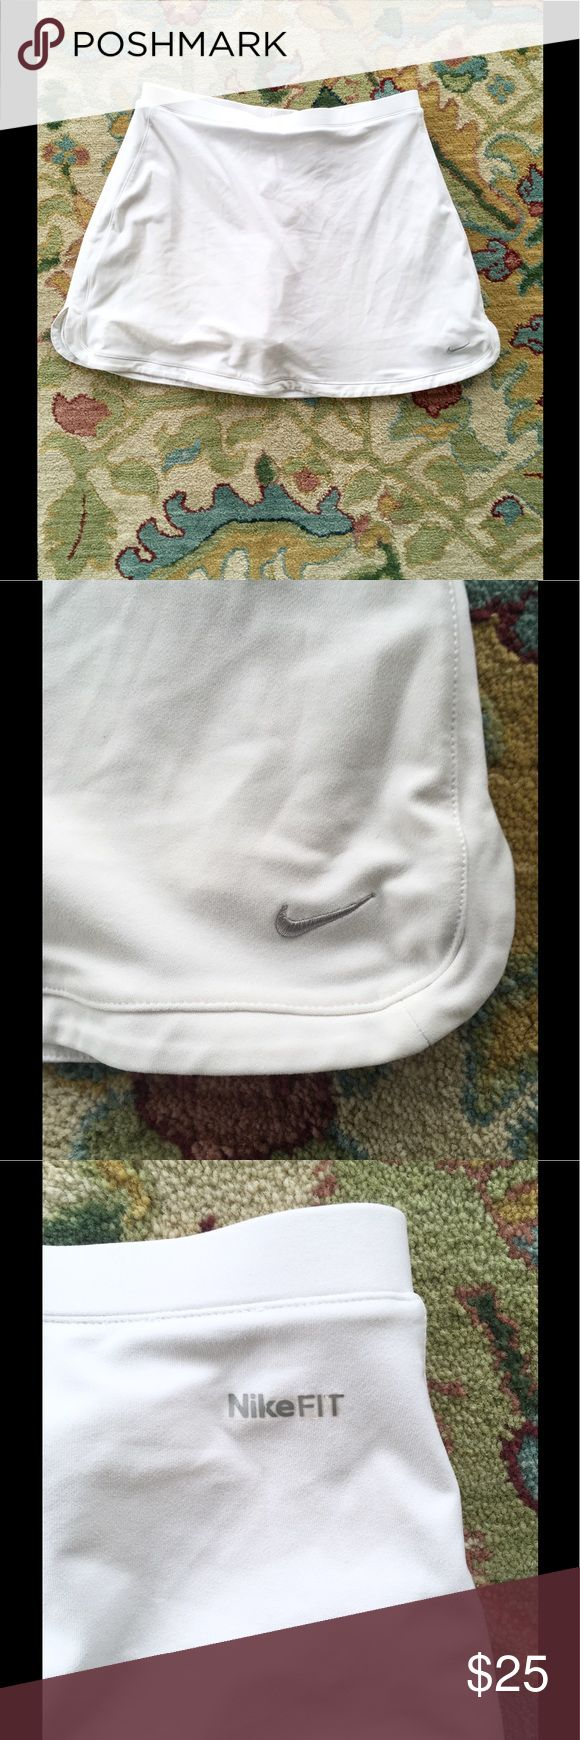 🎀 NIKE DRI FIT TENNIS SKIRT SKIRT w/Shorts 🎀 Ready for the US OPEN TENNIS?  Elegant White NIKE DRI-FIT TENNIS SKIRT SKORT w attached Shorts. Nike Swish Logo. Size XL label Fits 12 14. In fine gently worn condition. Pair with my listed Ralph Lauren Polo. Nike Skirts